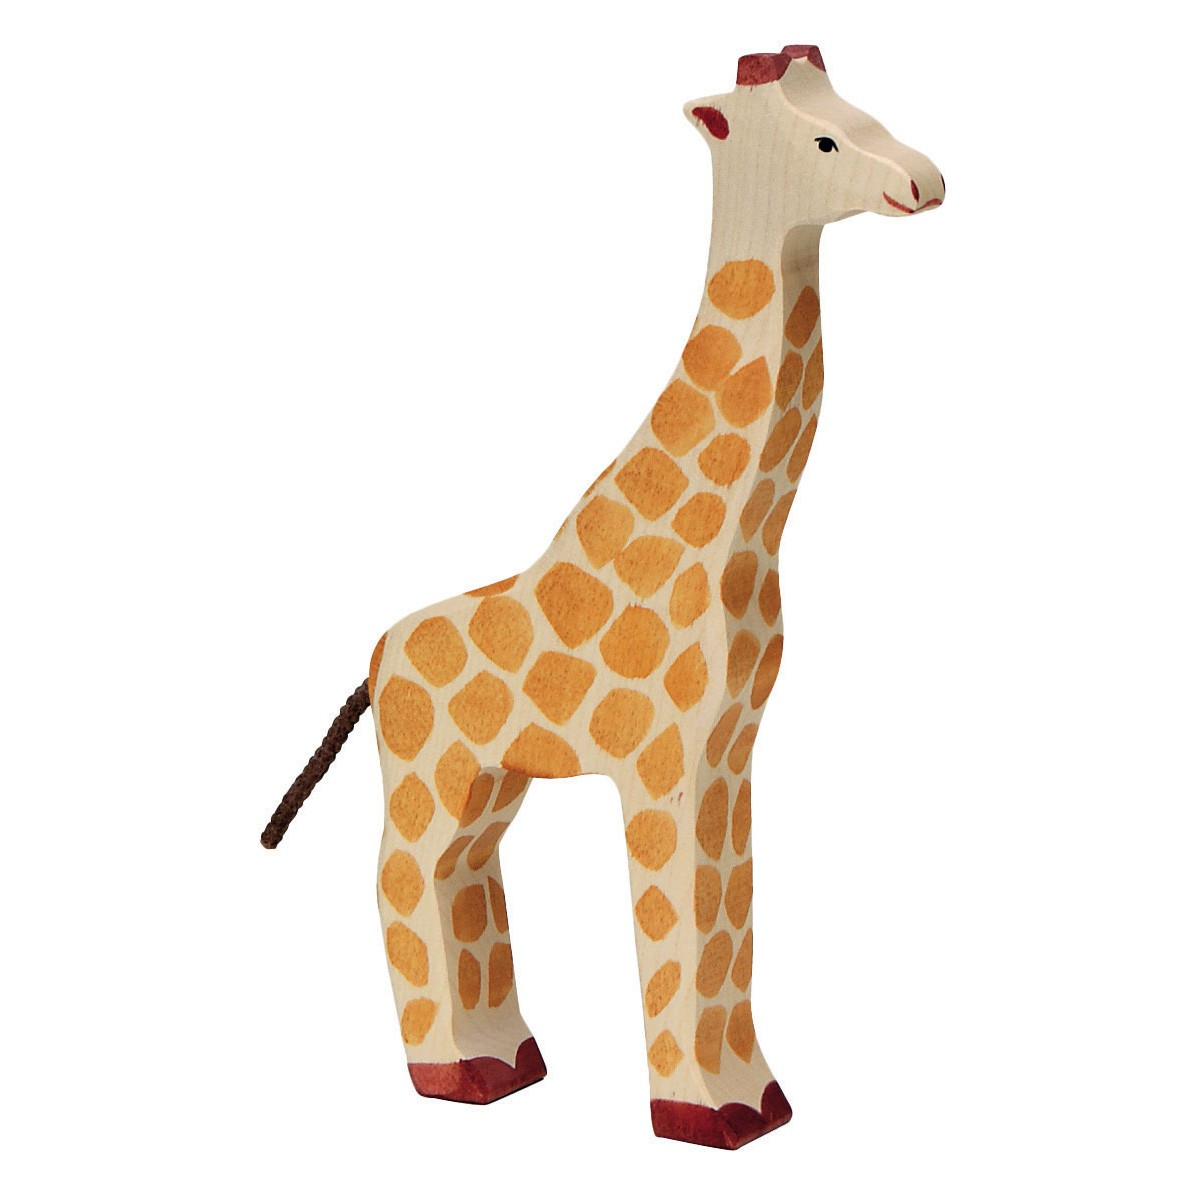 Toys & Hobbies Action Figures Holztiger Giraffe Wooden Figure